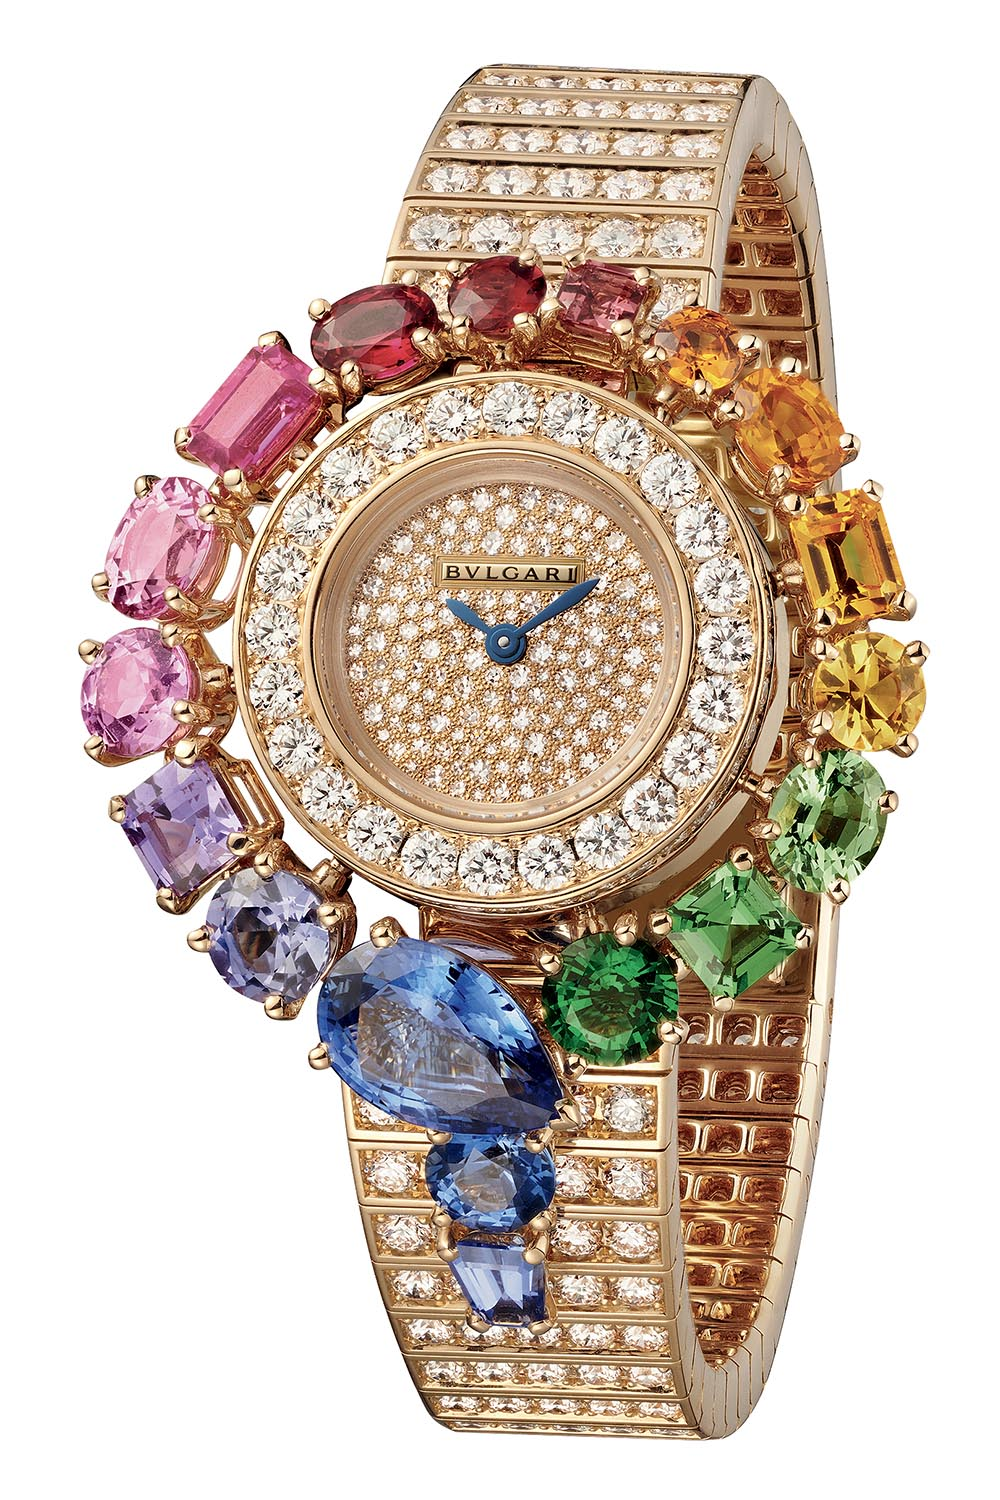 2020 Rainbow and Colour Wave Bvlgari Incantati watches - 2